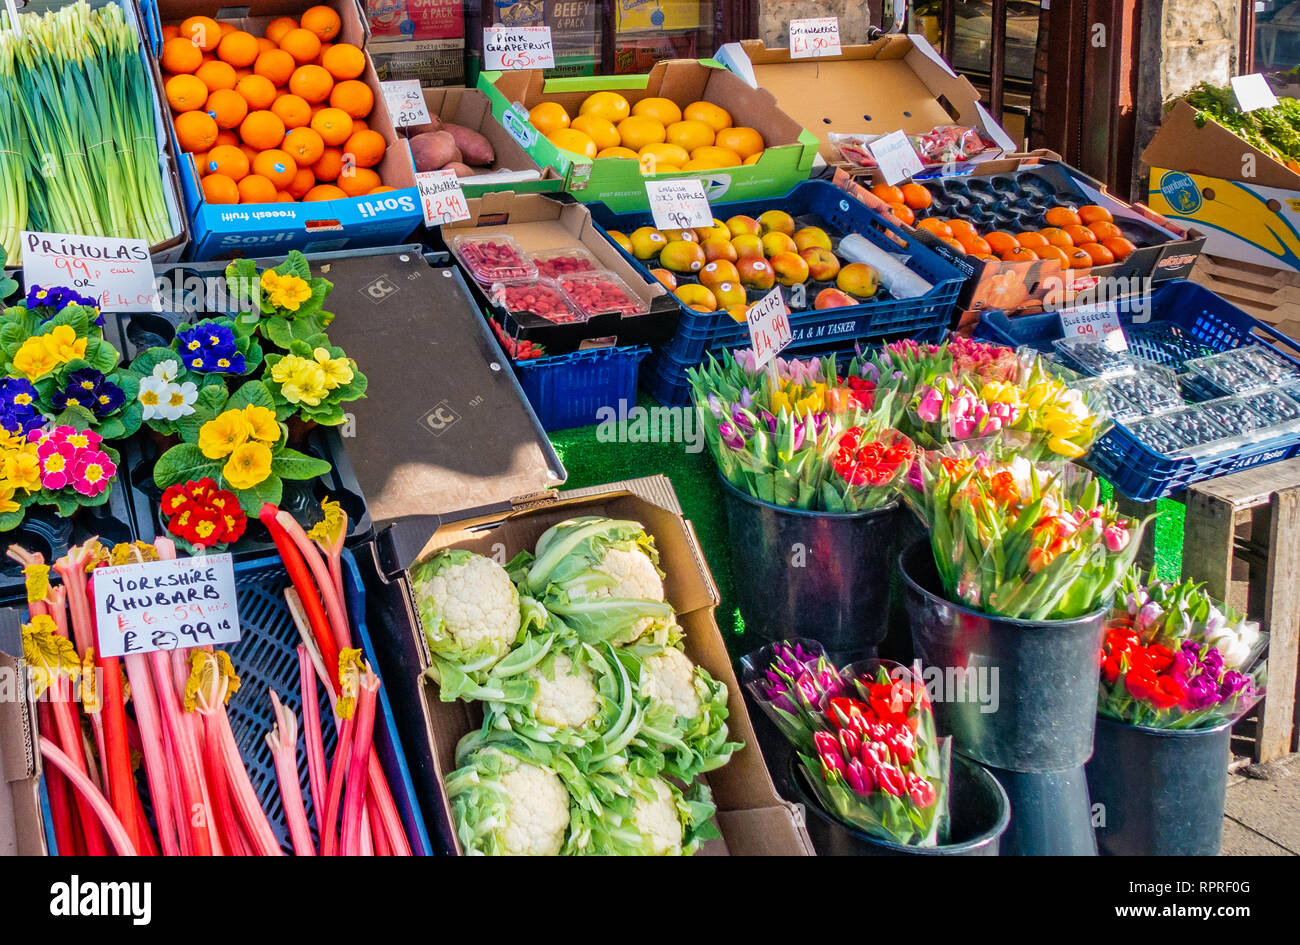 English village shop, Greengrocers shop display  in Market Place, Tickhill in the Metropolitan Borough of Doncaster in South Yorkshire, England, Stock Photo